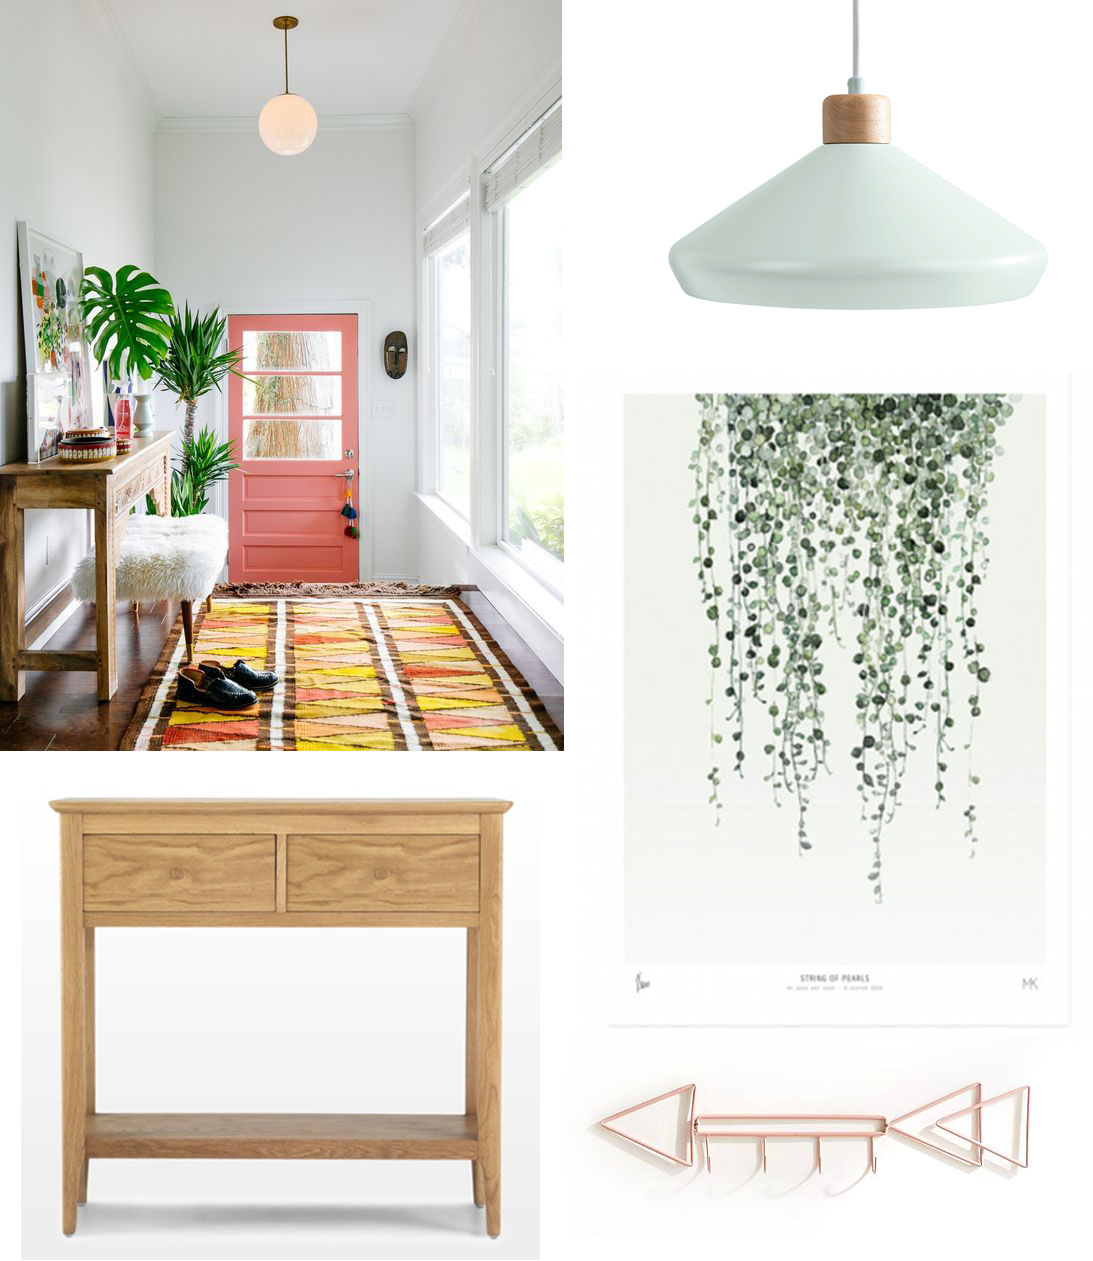 Image top left via  oldbrandnew.com  /  Mint green ceiling light , £49, made.com /  String of hearts art print,  £78, Ross and Brown /  Arrow hook , £19.60, Urban Outfitters /  Oak console Table , £217, Quercus Living